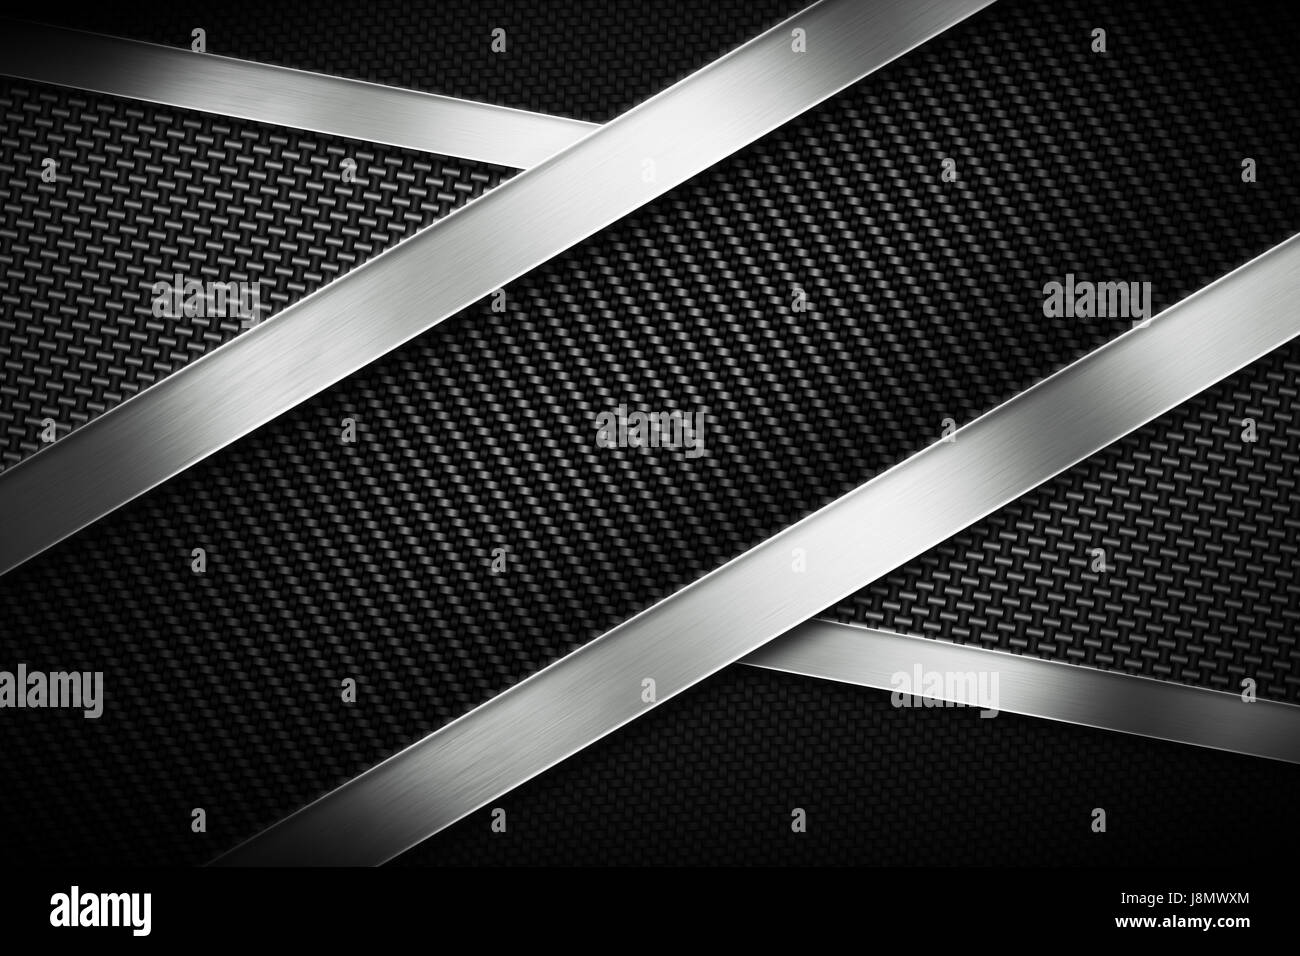 Types of material immagini & types of material fotos stock alamy